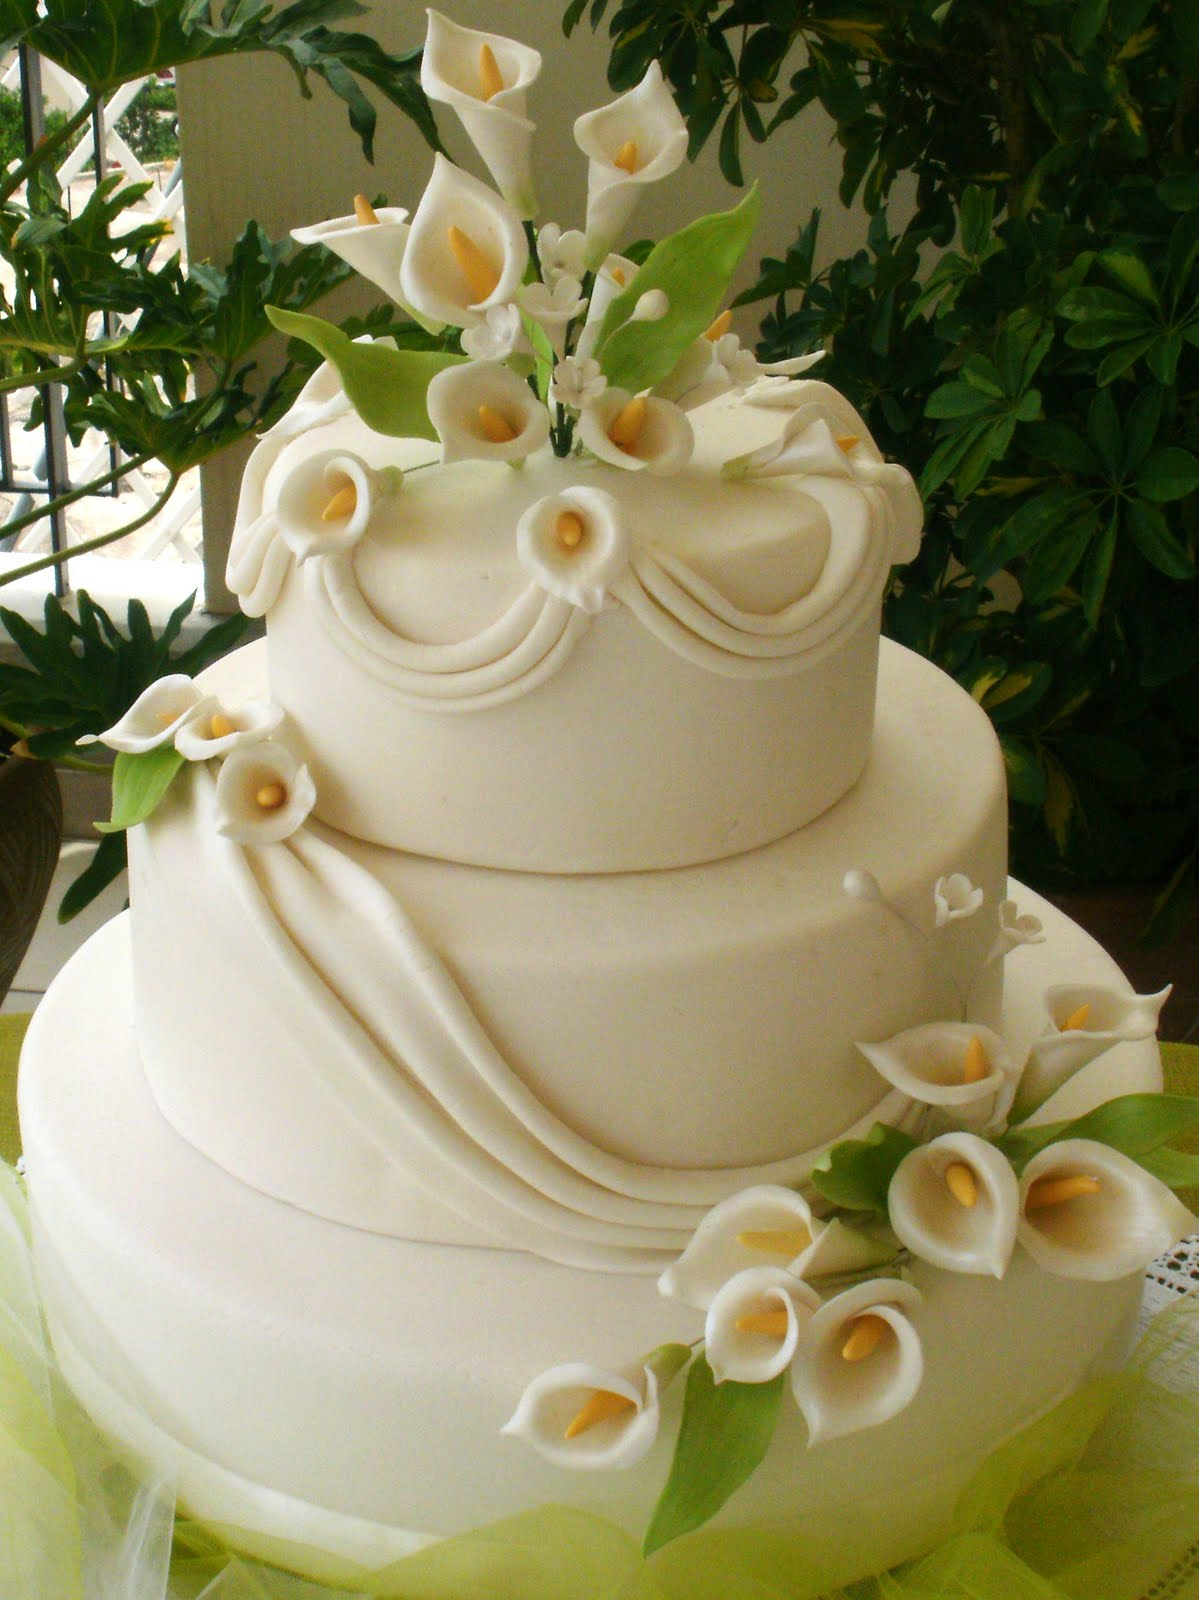 Wedding Cakes With Calla Lilies Decorations